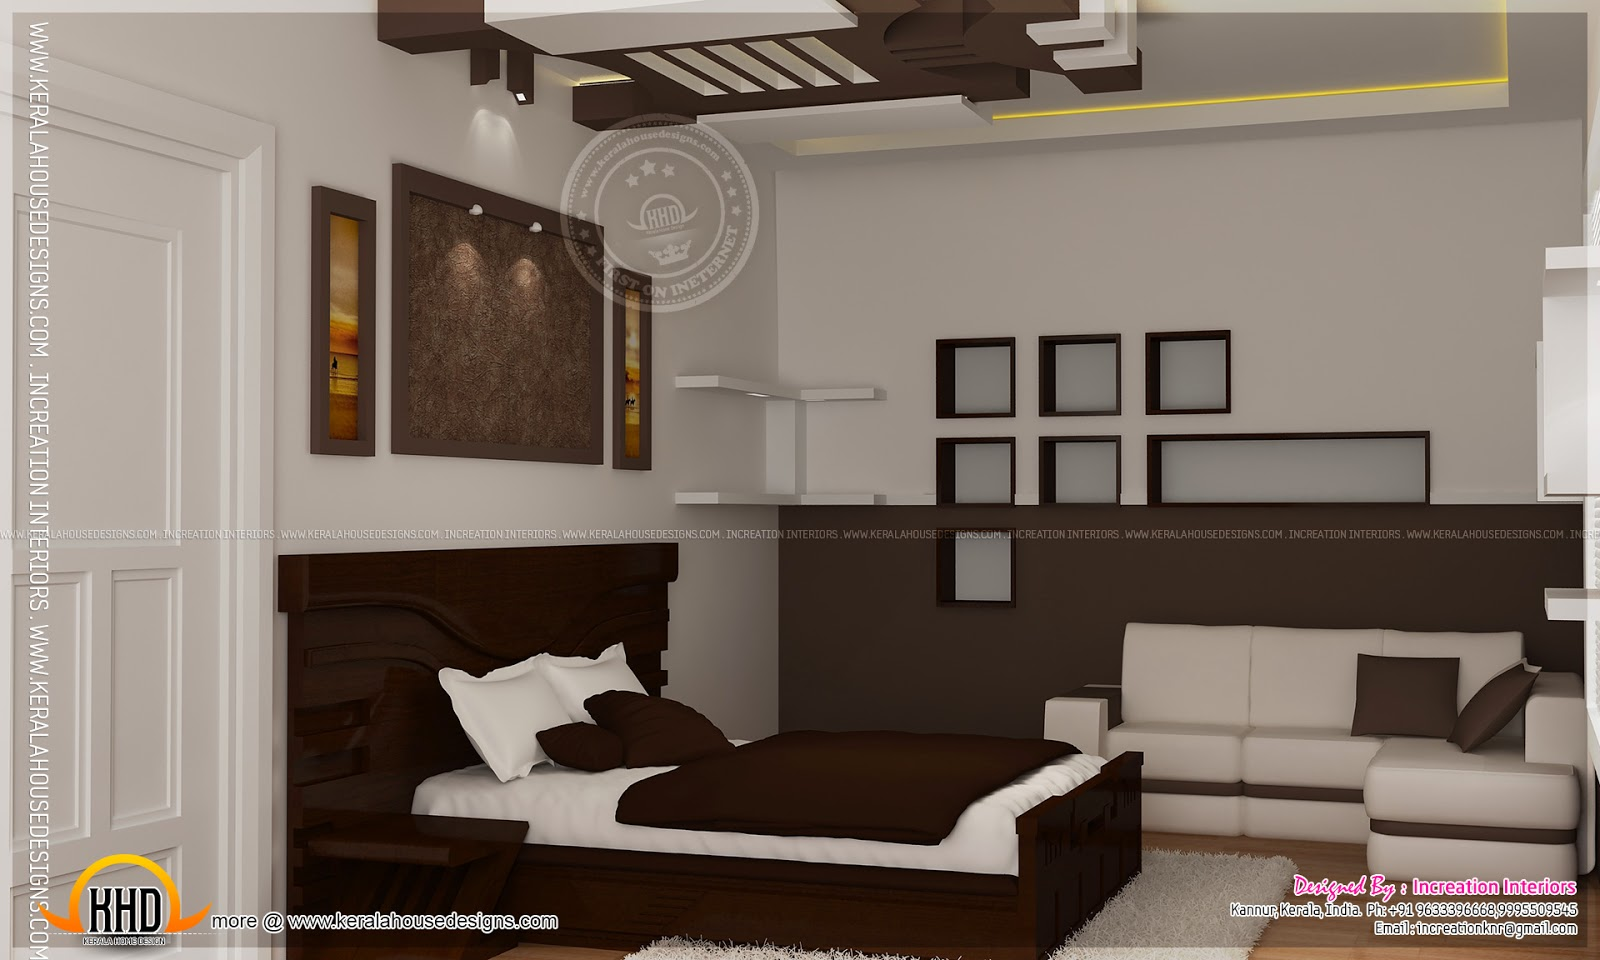 House Interior Design Kannur Kerala Kerala Home Design And Floor Plans